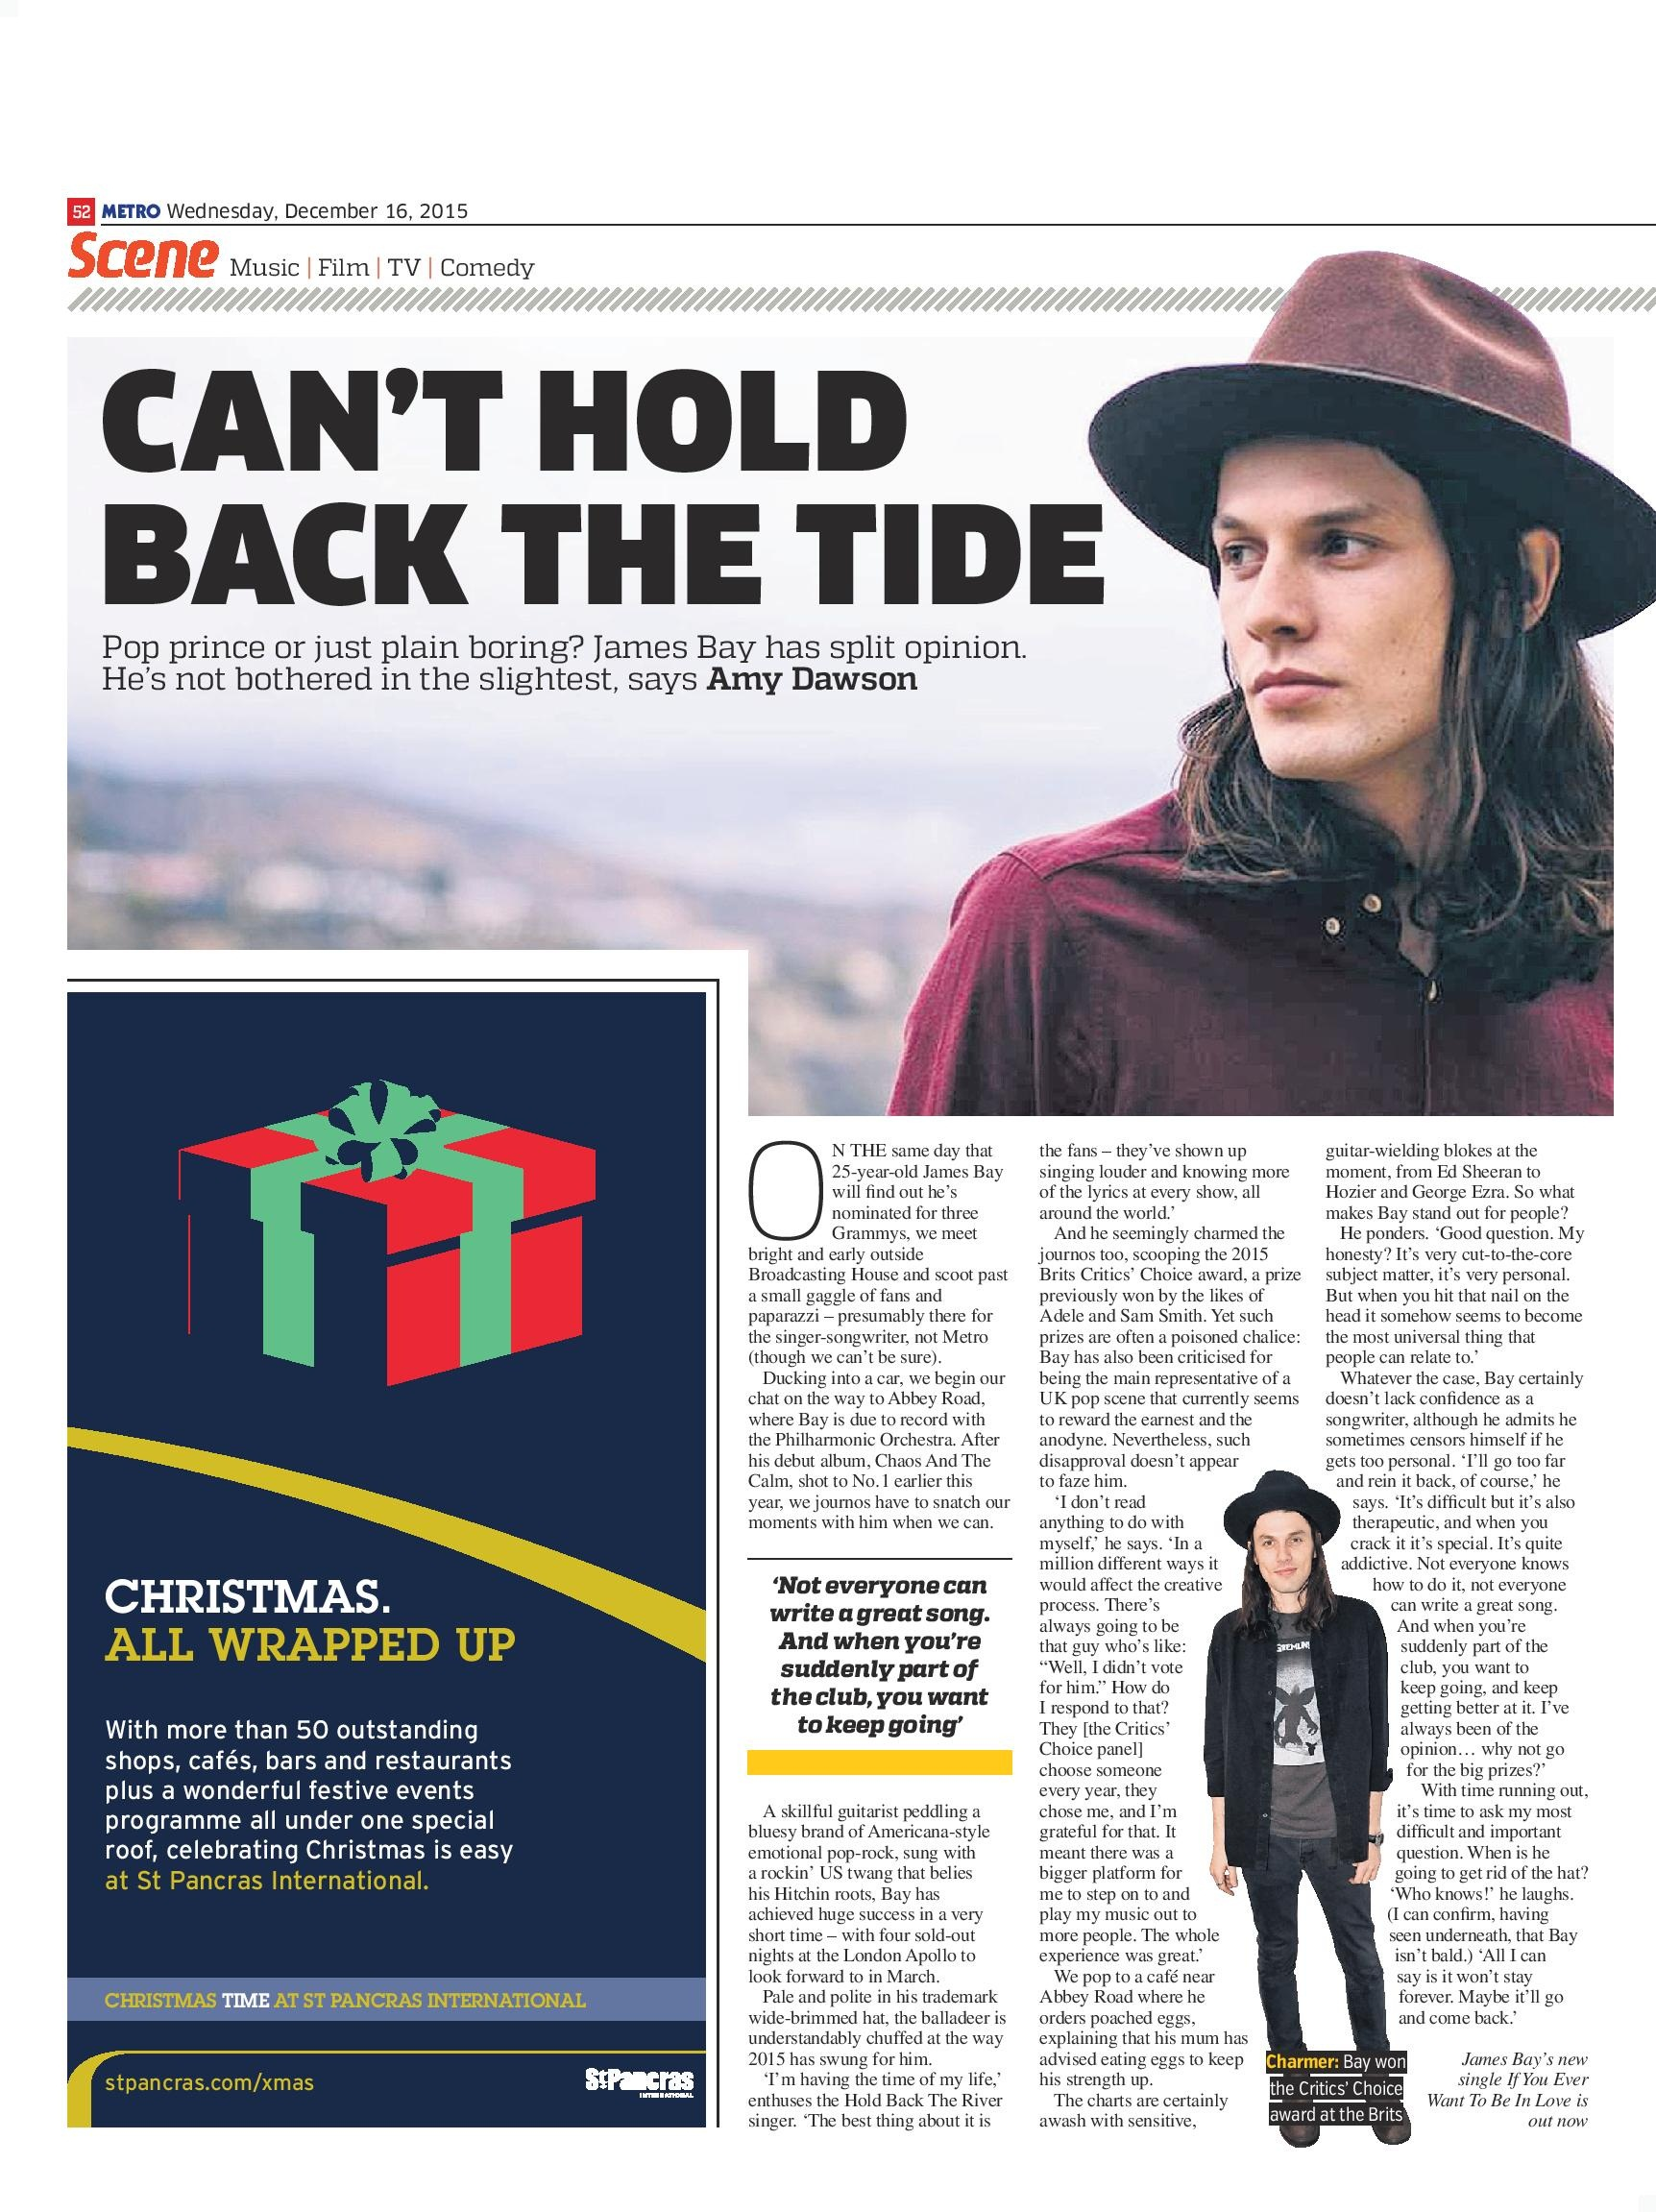 Can't Hold Back The Tide: An interview with James Bay (Metro, 16th Dec 2015)